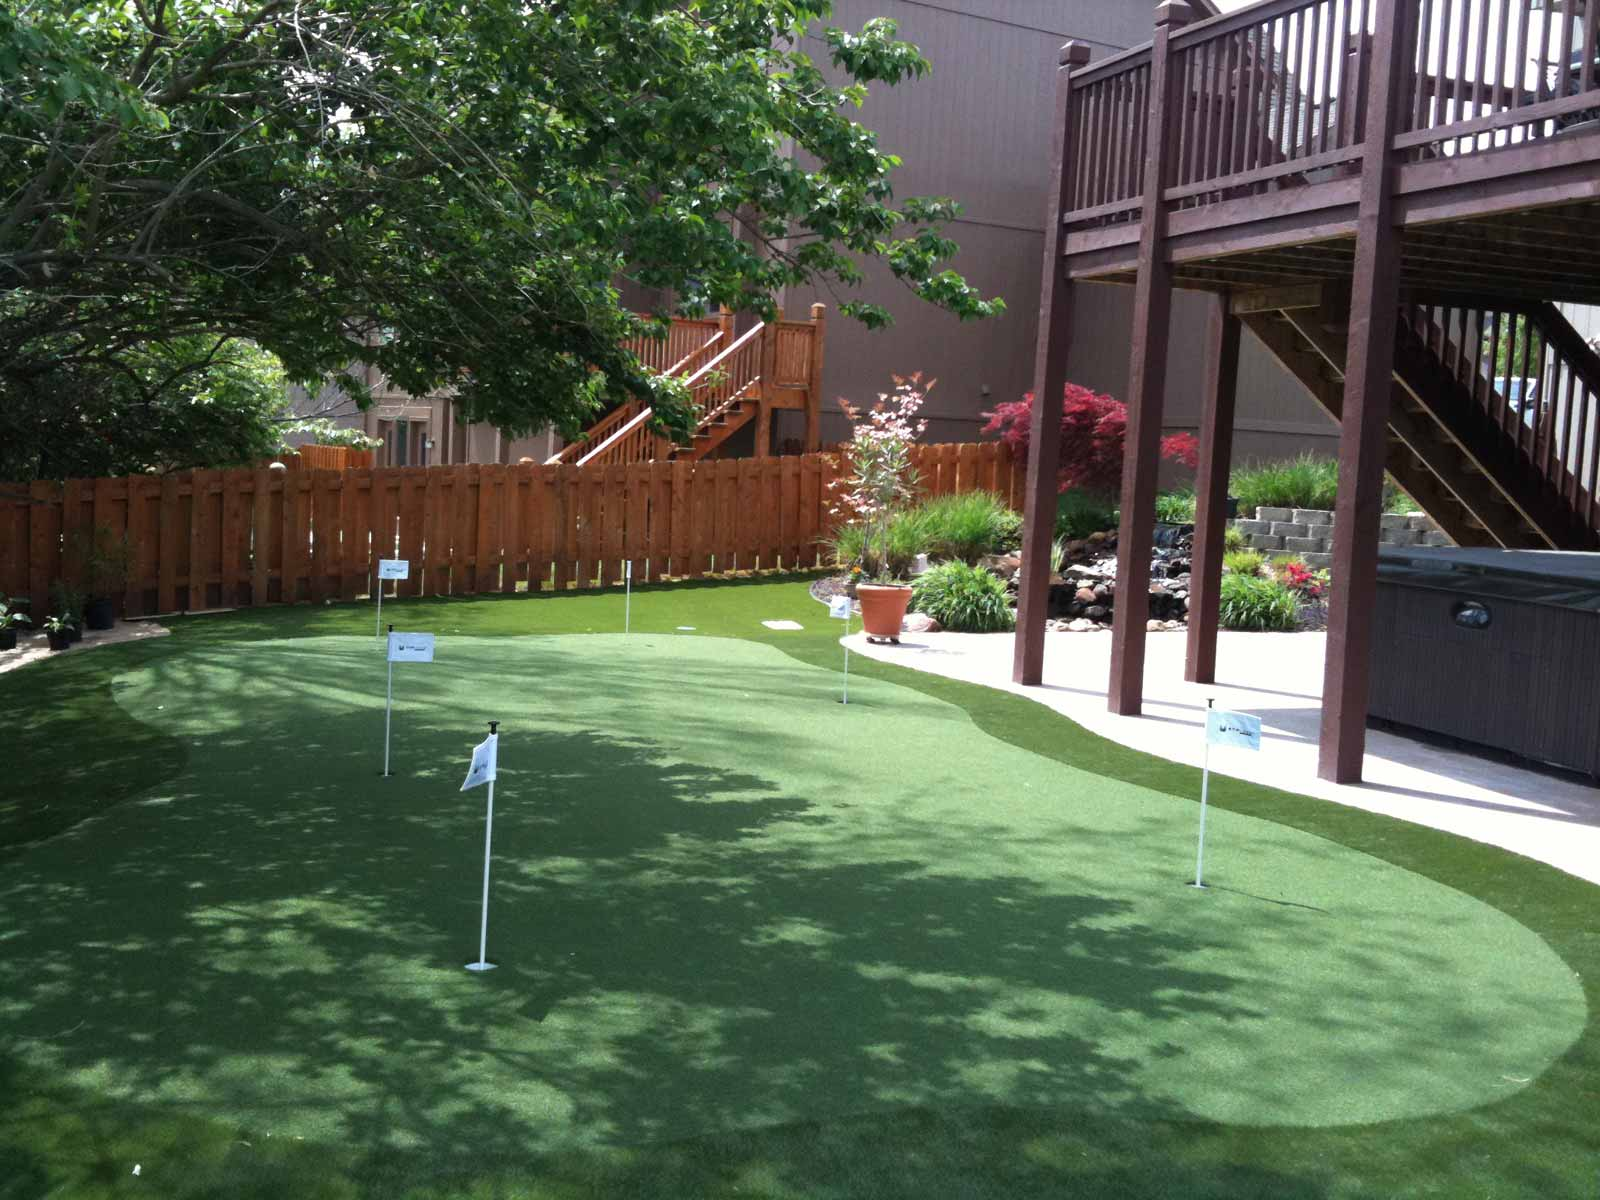 Large backyard putting green with six holes for customer Marty Albertson in Missouri